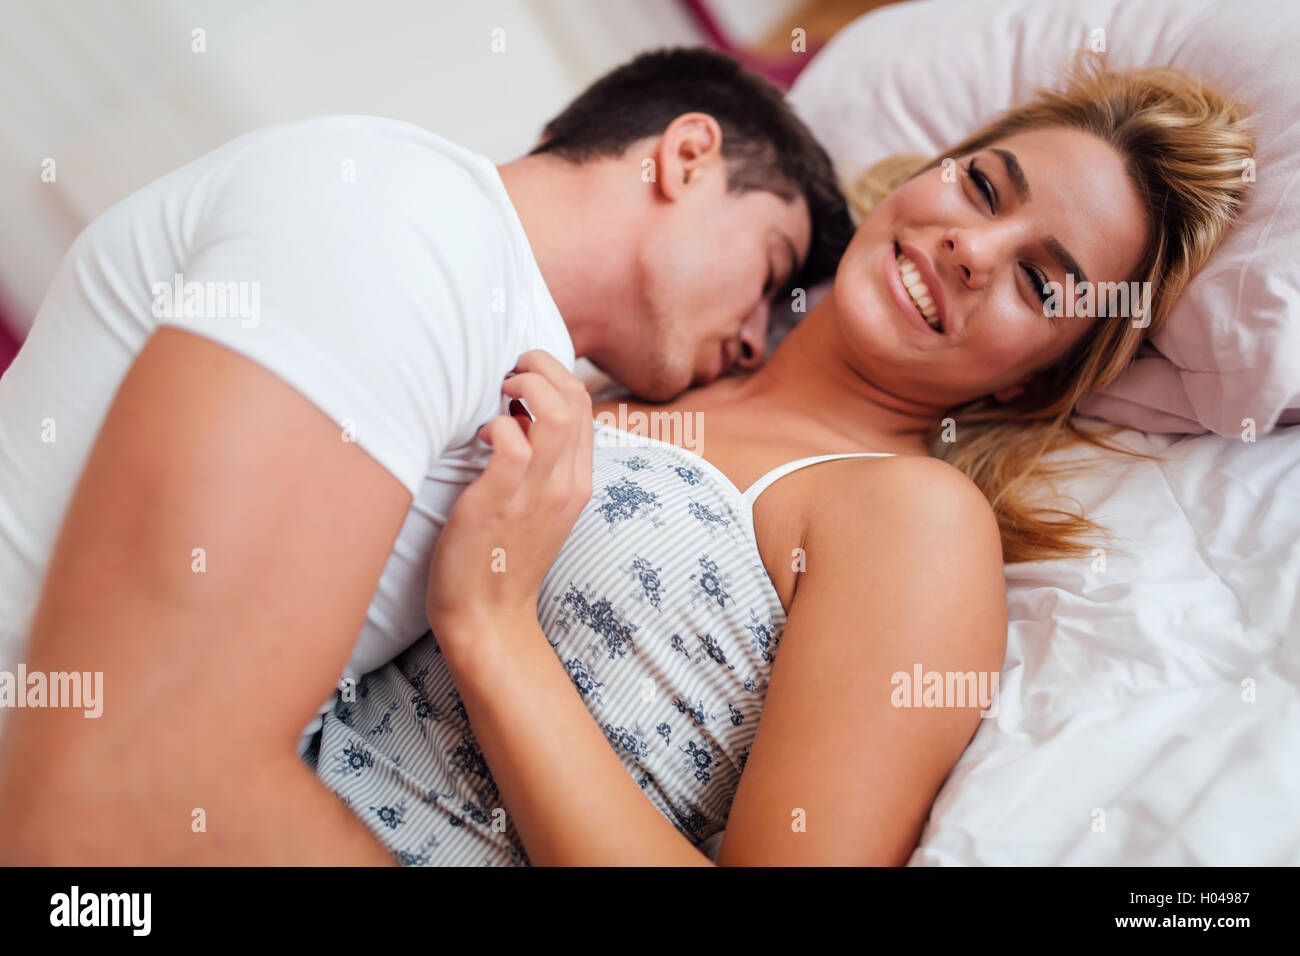 Handsome Couple In Love Bed Being Sensual